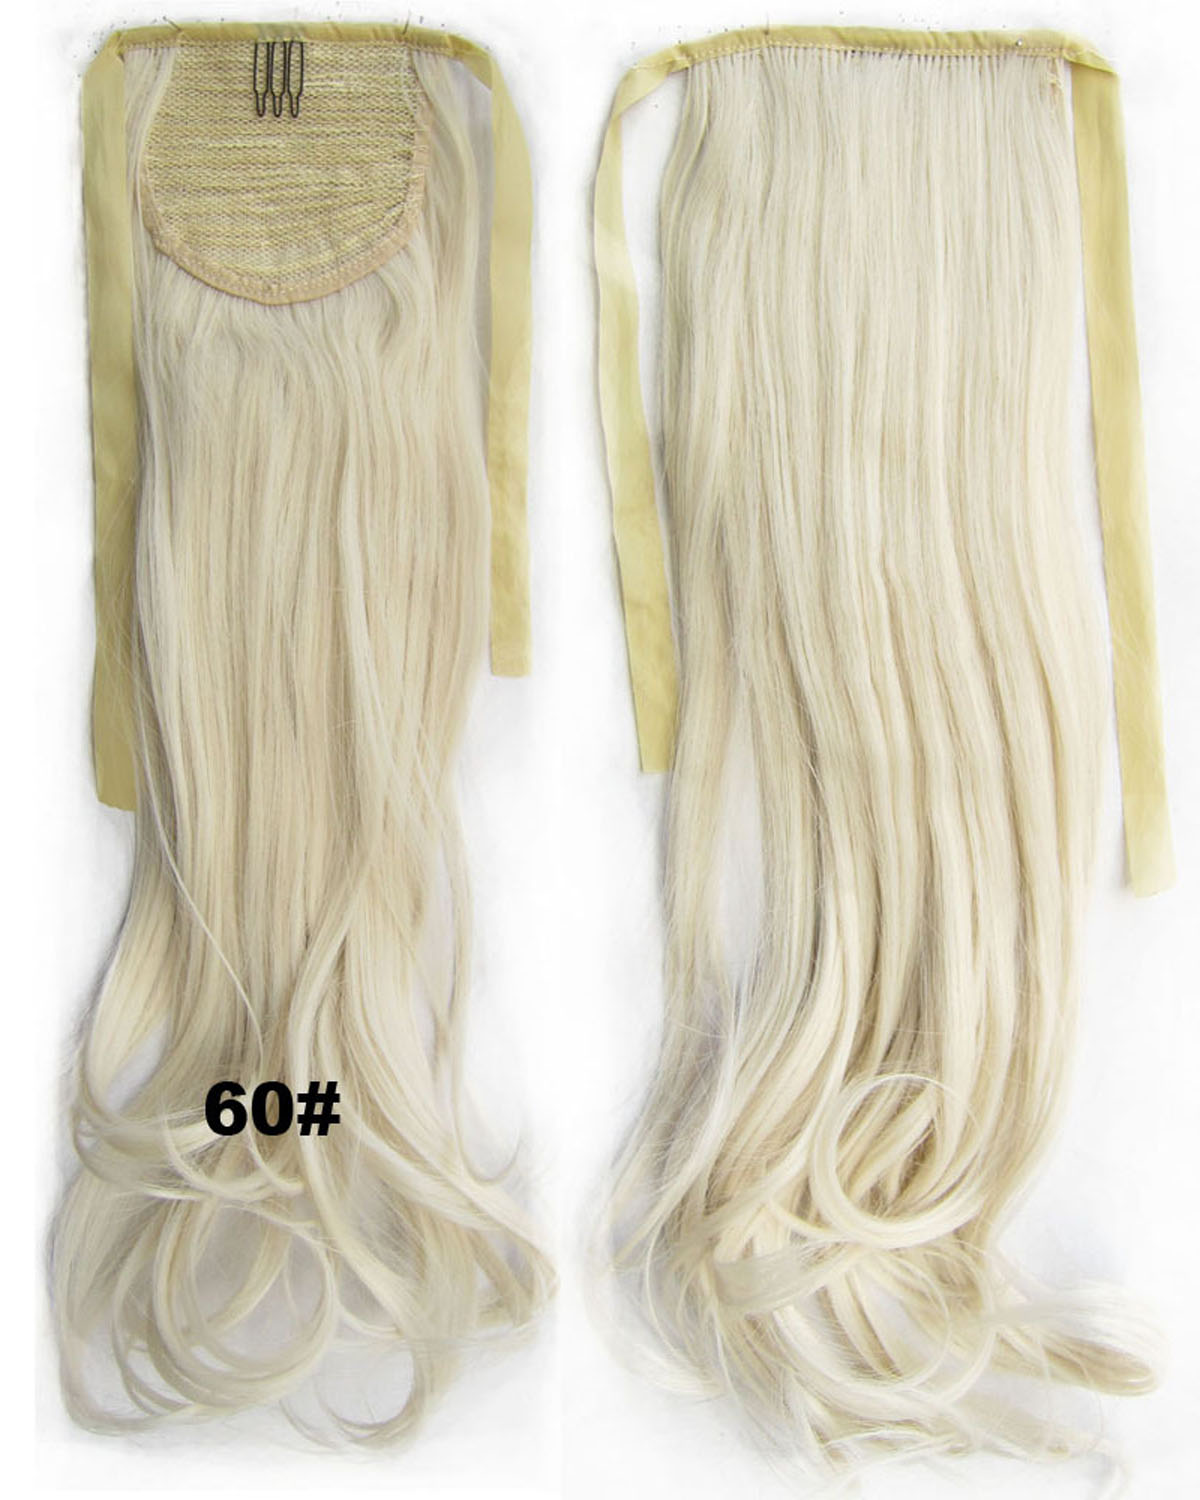 22 Inch Woman  Curly and Long Lace/Ribbon Synthetic Hair Ponytail  60# Beautiful Body Wave